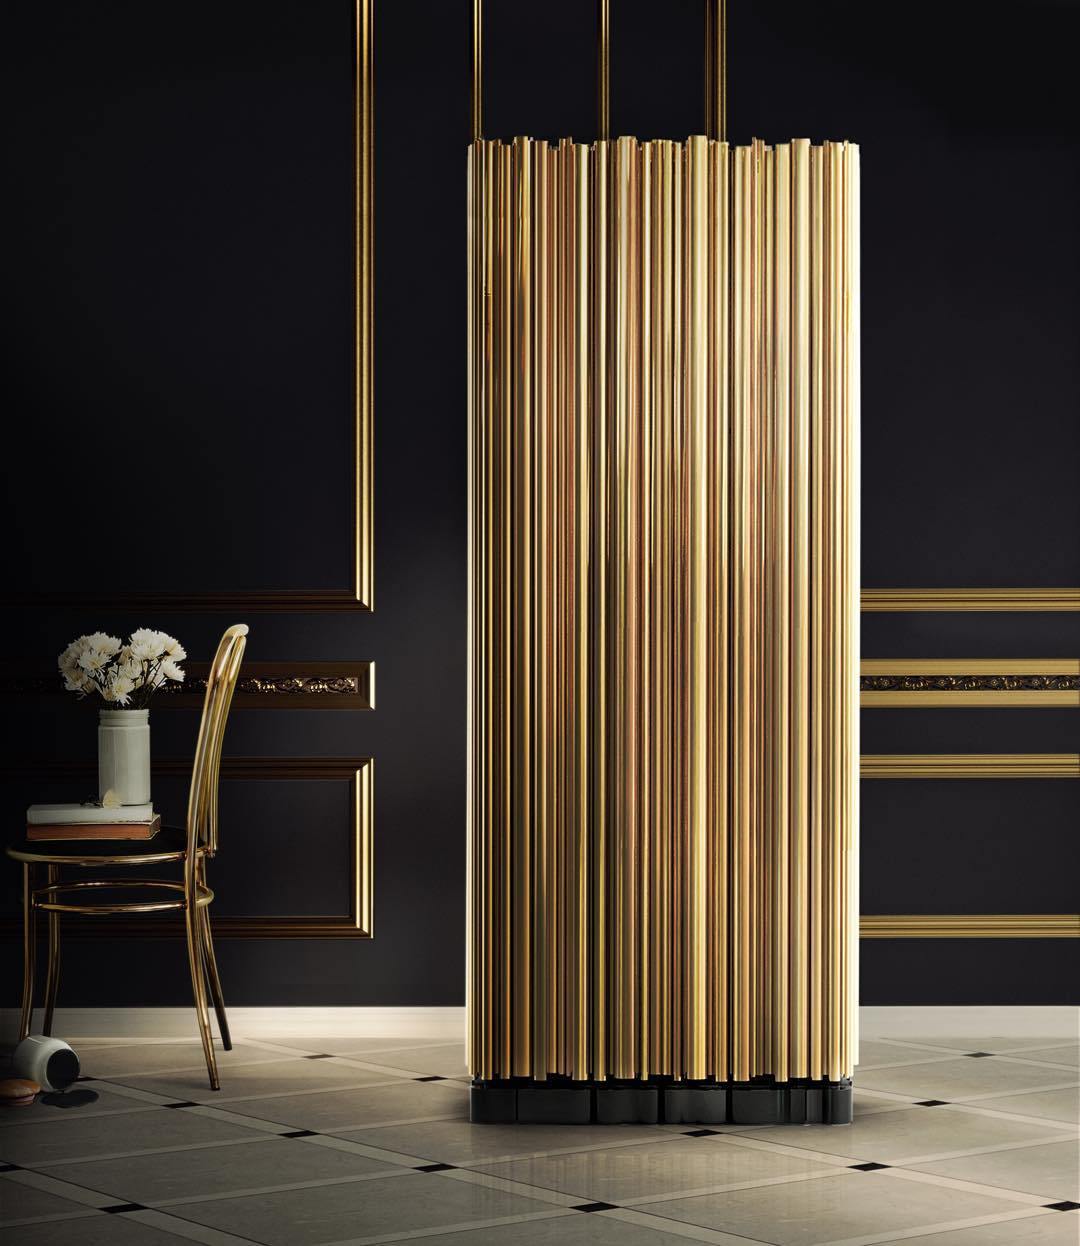 The Symphony Cabinet is inspired by the movement and evolutionhellip